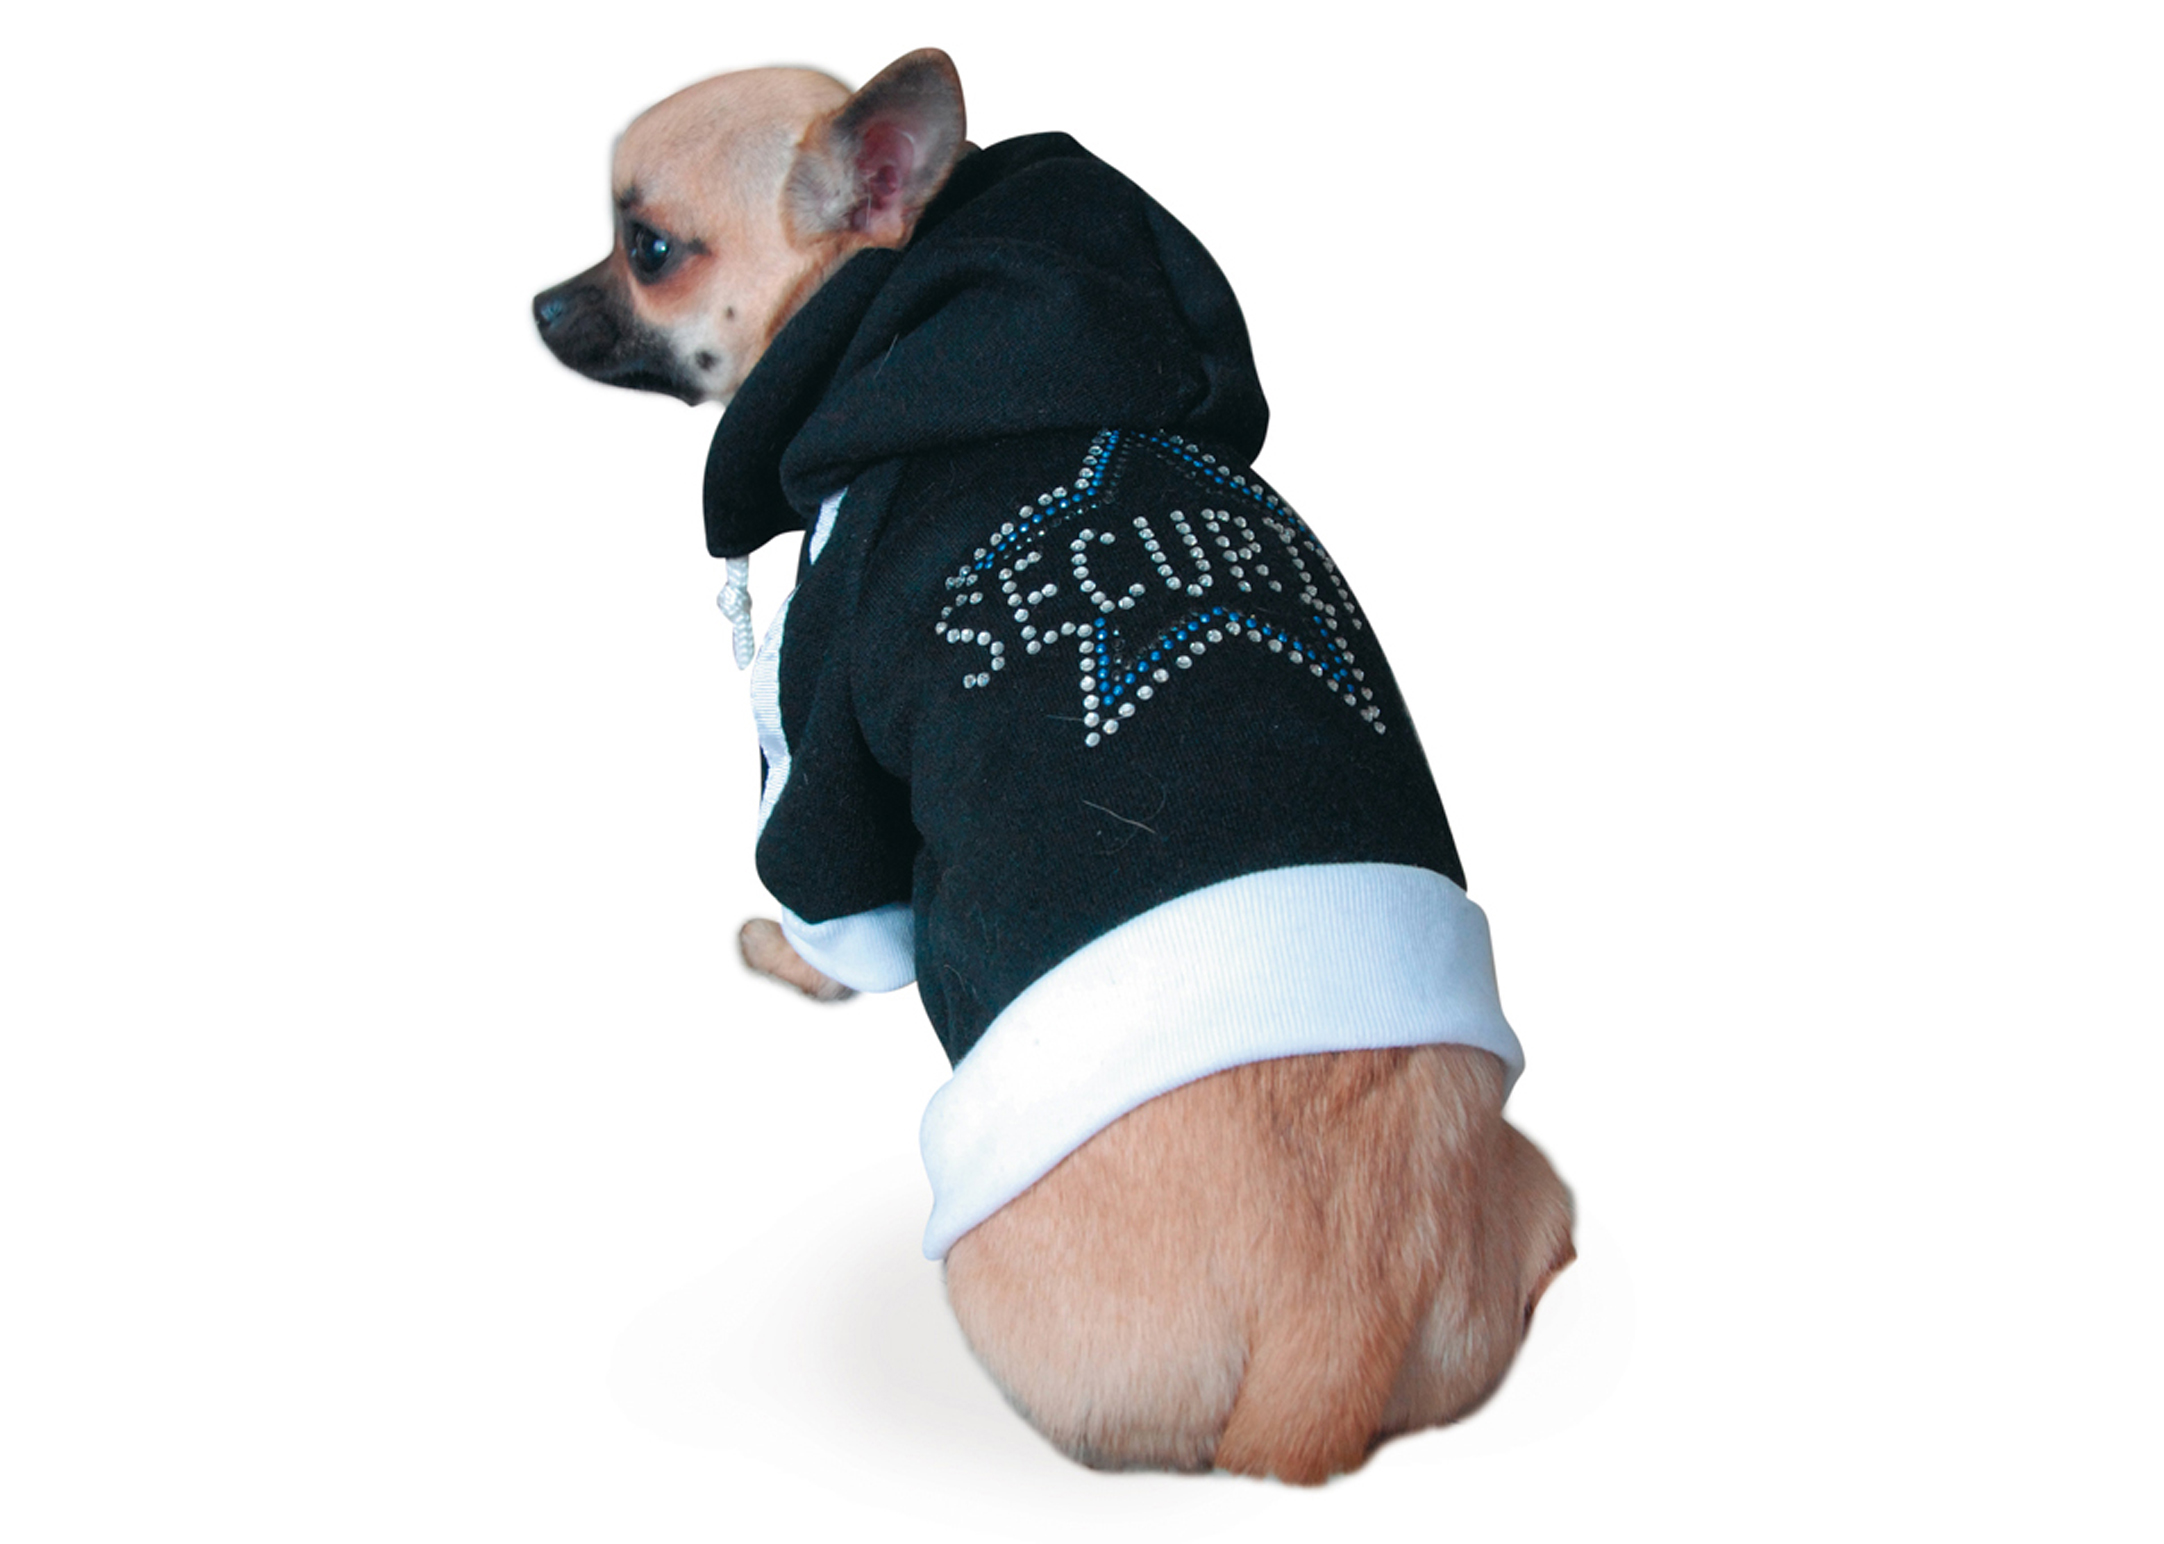 Max+Co Security Hood Attire For Dogs